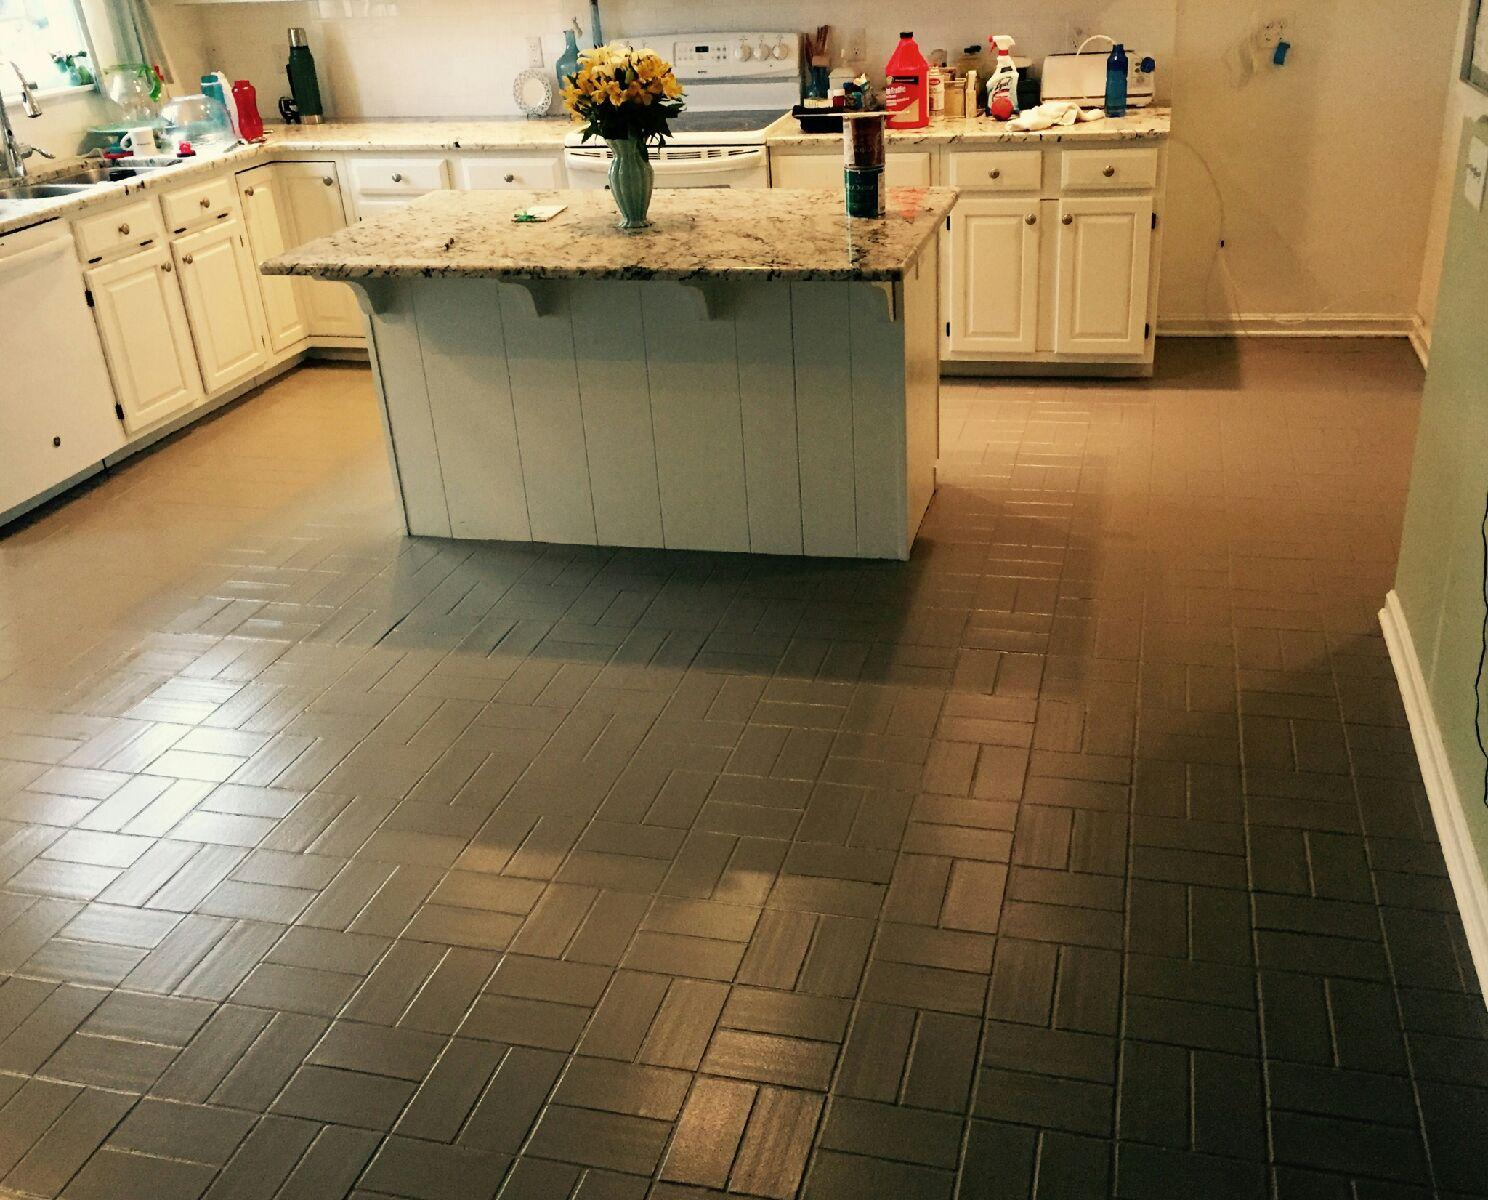 Pet safe and clean at a cost that is lean painting floors can save painted kitchen floor after with just add paint in mechanicsburg pa 17055 dailygadgetfo Choice Image